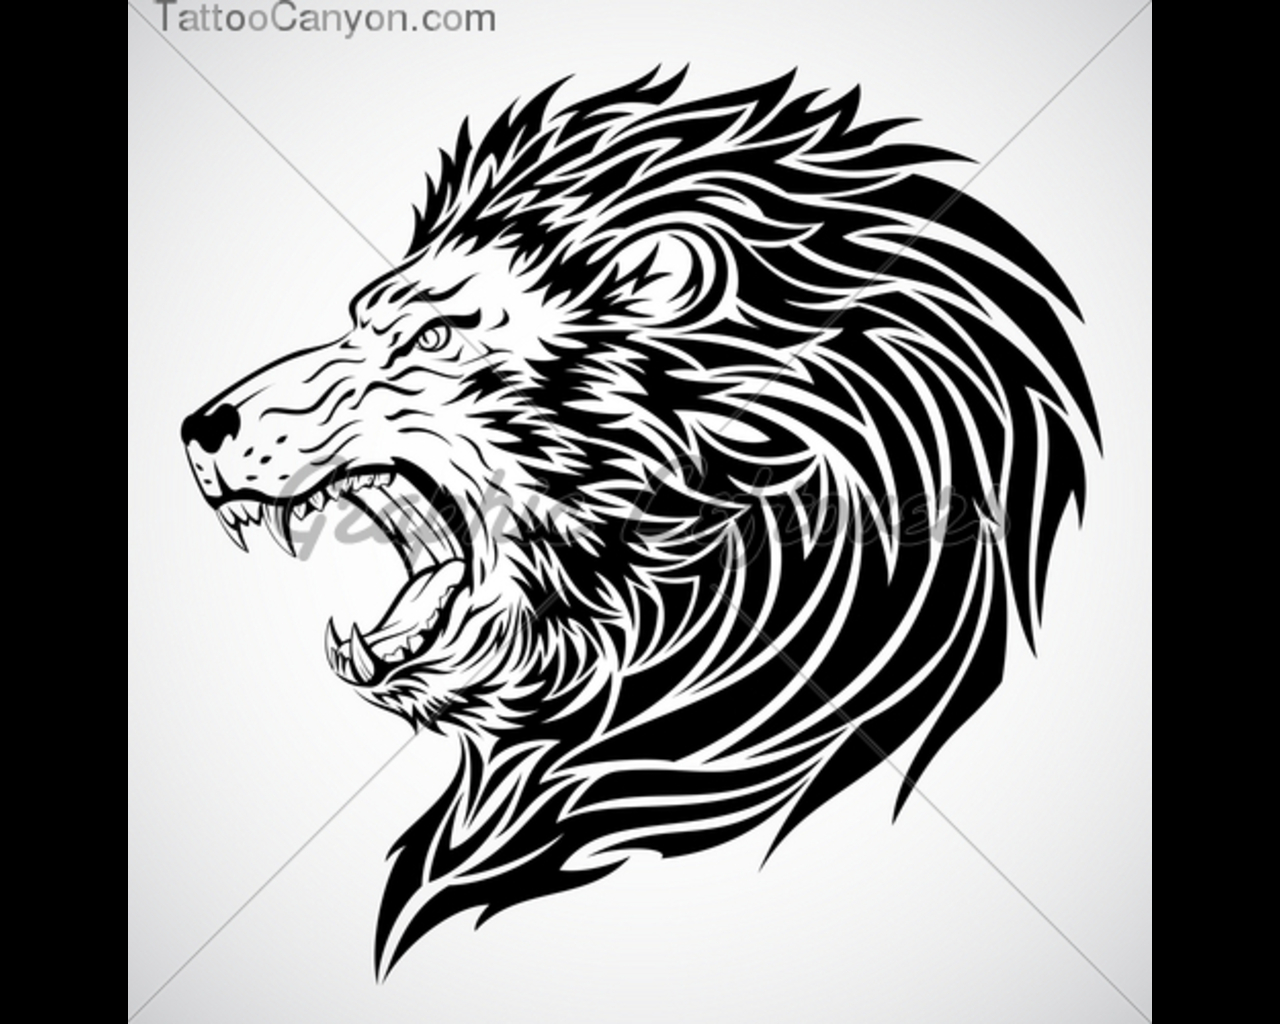 fierce lion head tattoo design photo 1 2017 real photo pictures images and sketches. Black Bedroom Furniture Sets. Home Design Ideas